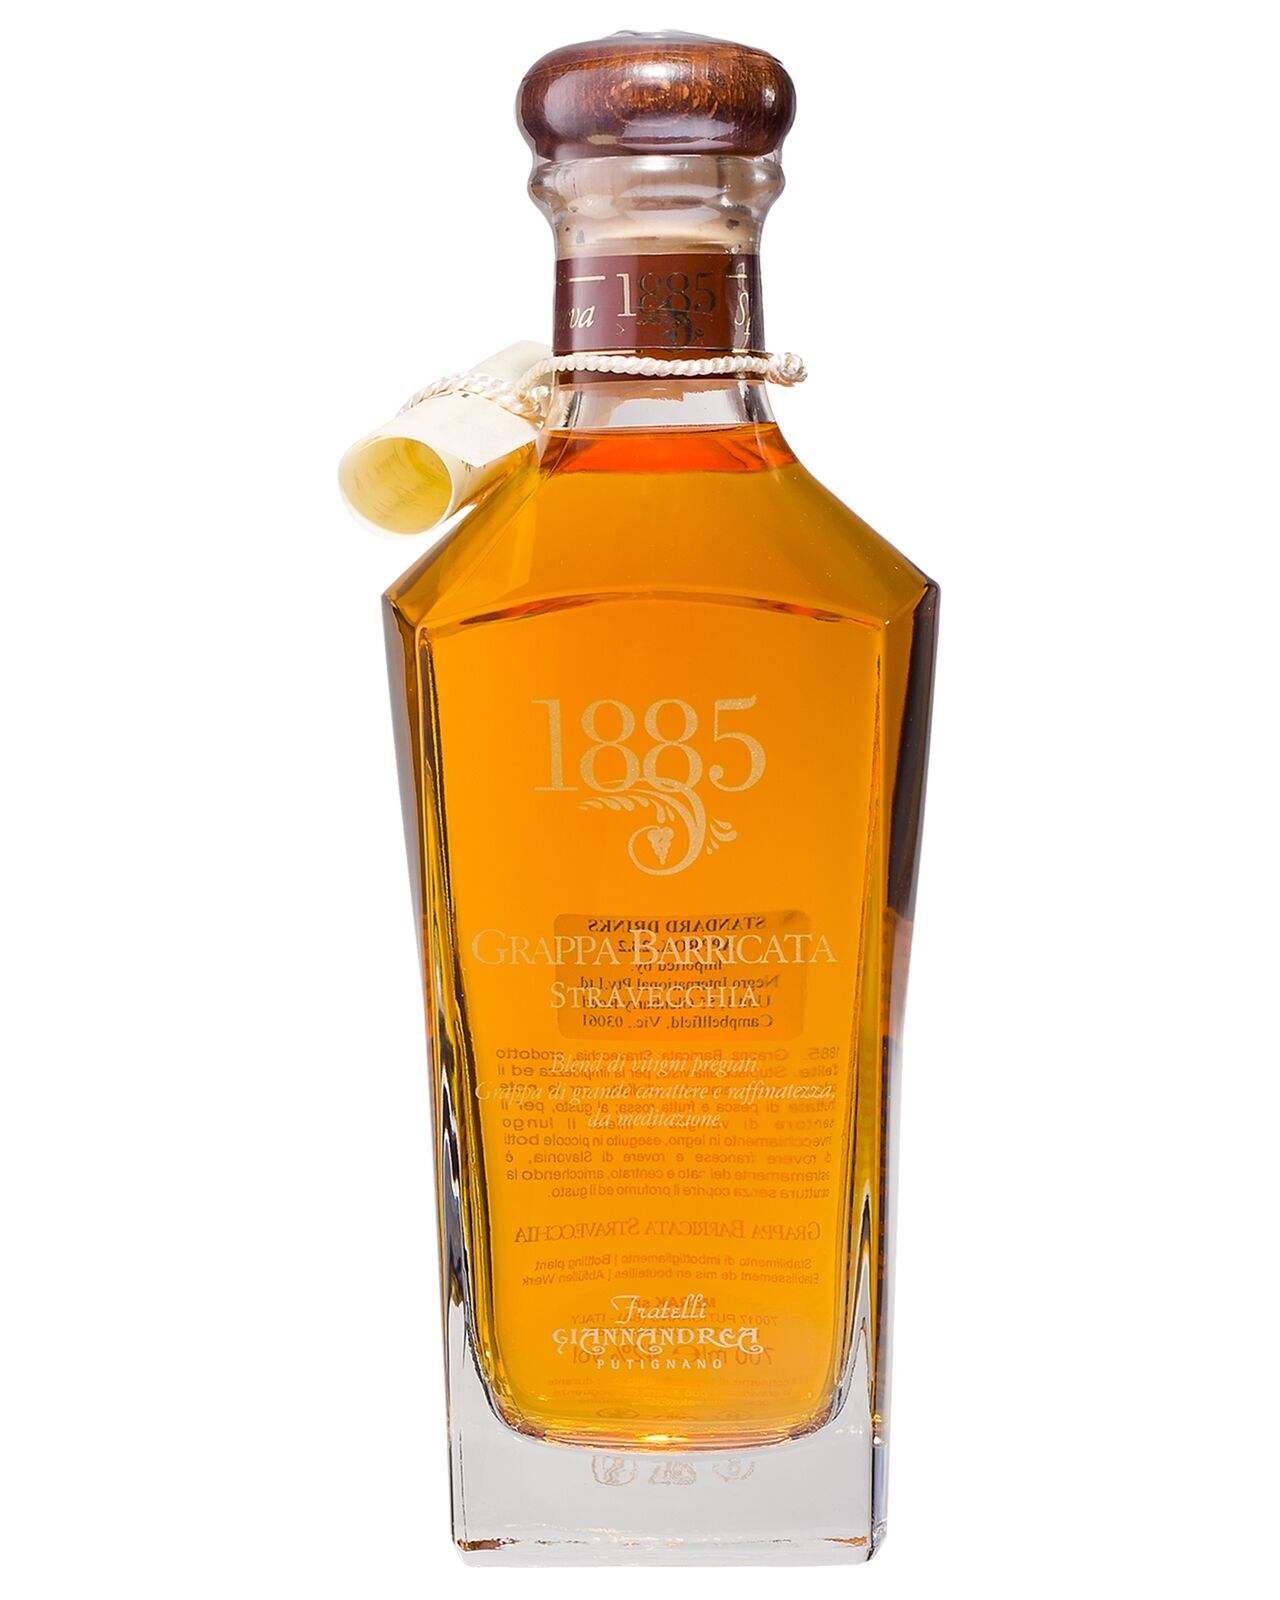 Grappa F.G. 1885 Stravecchia Barricata 700mL bottle